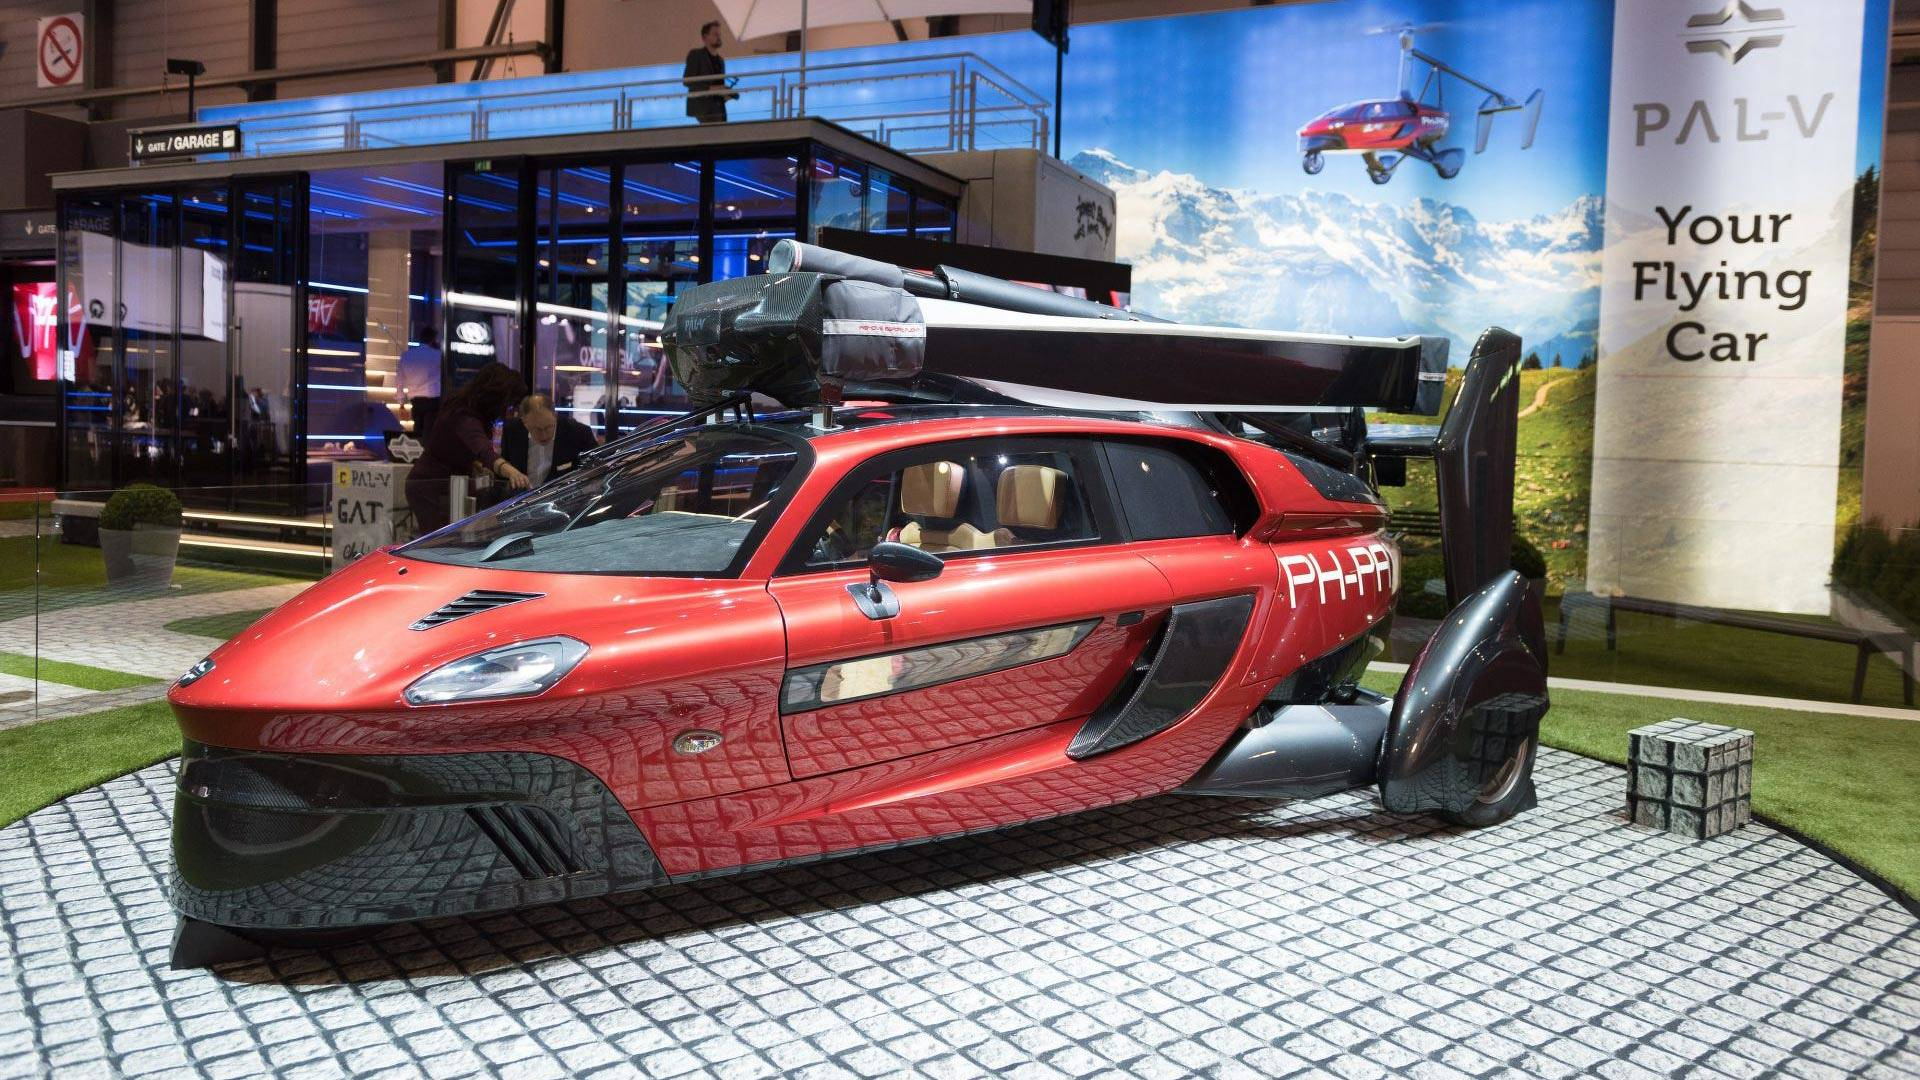 pal-v-liberty-flying-car-geneva-2018